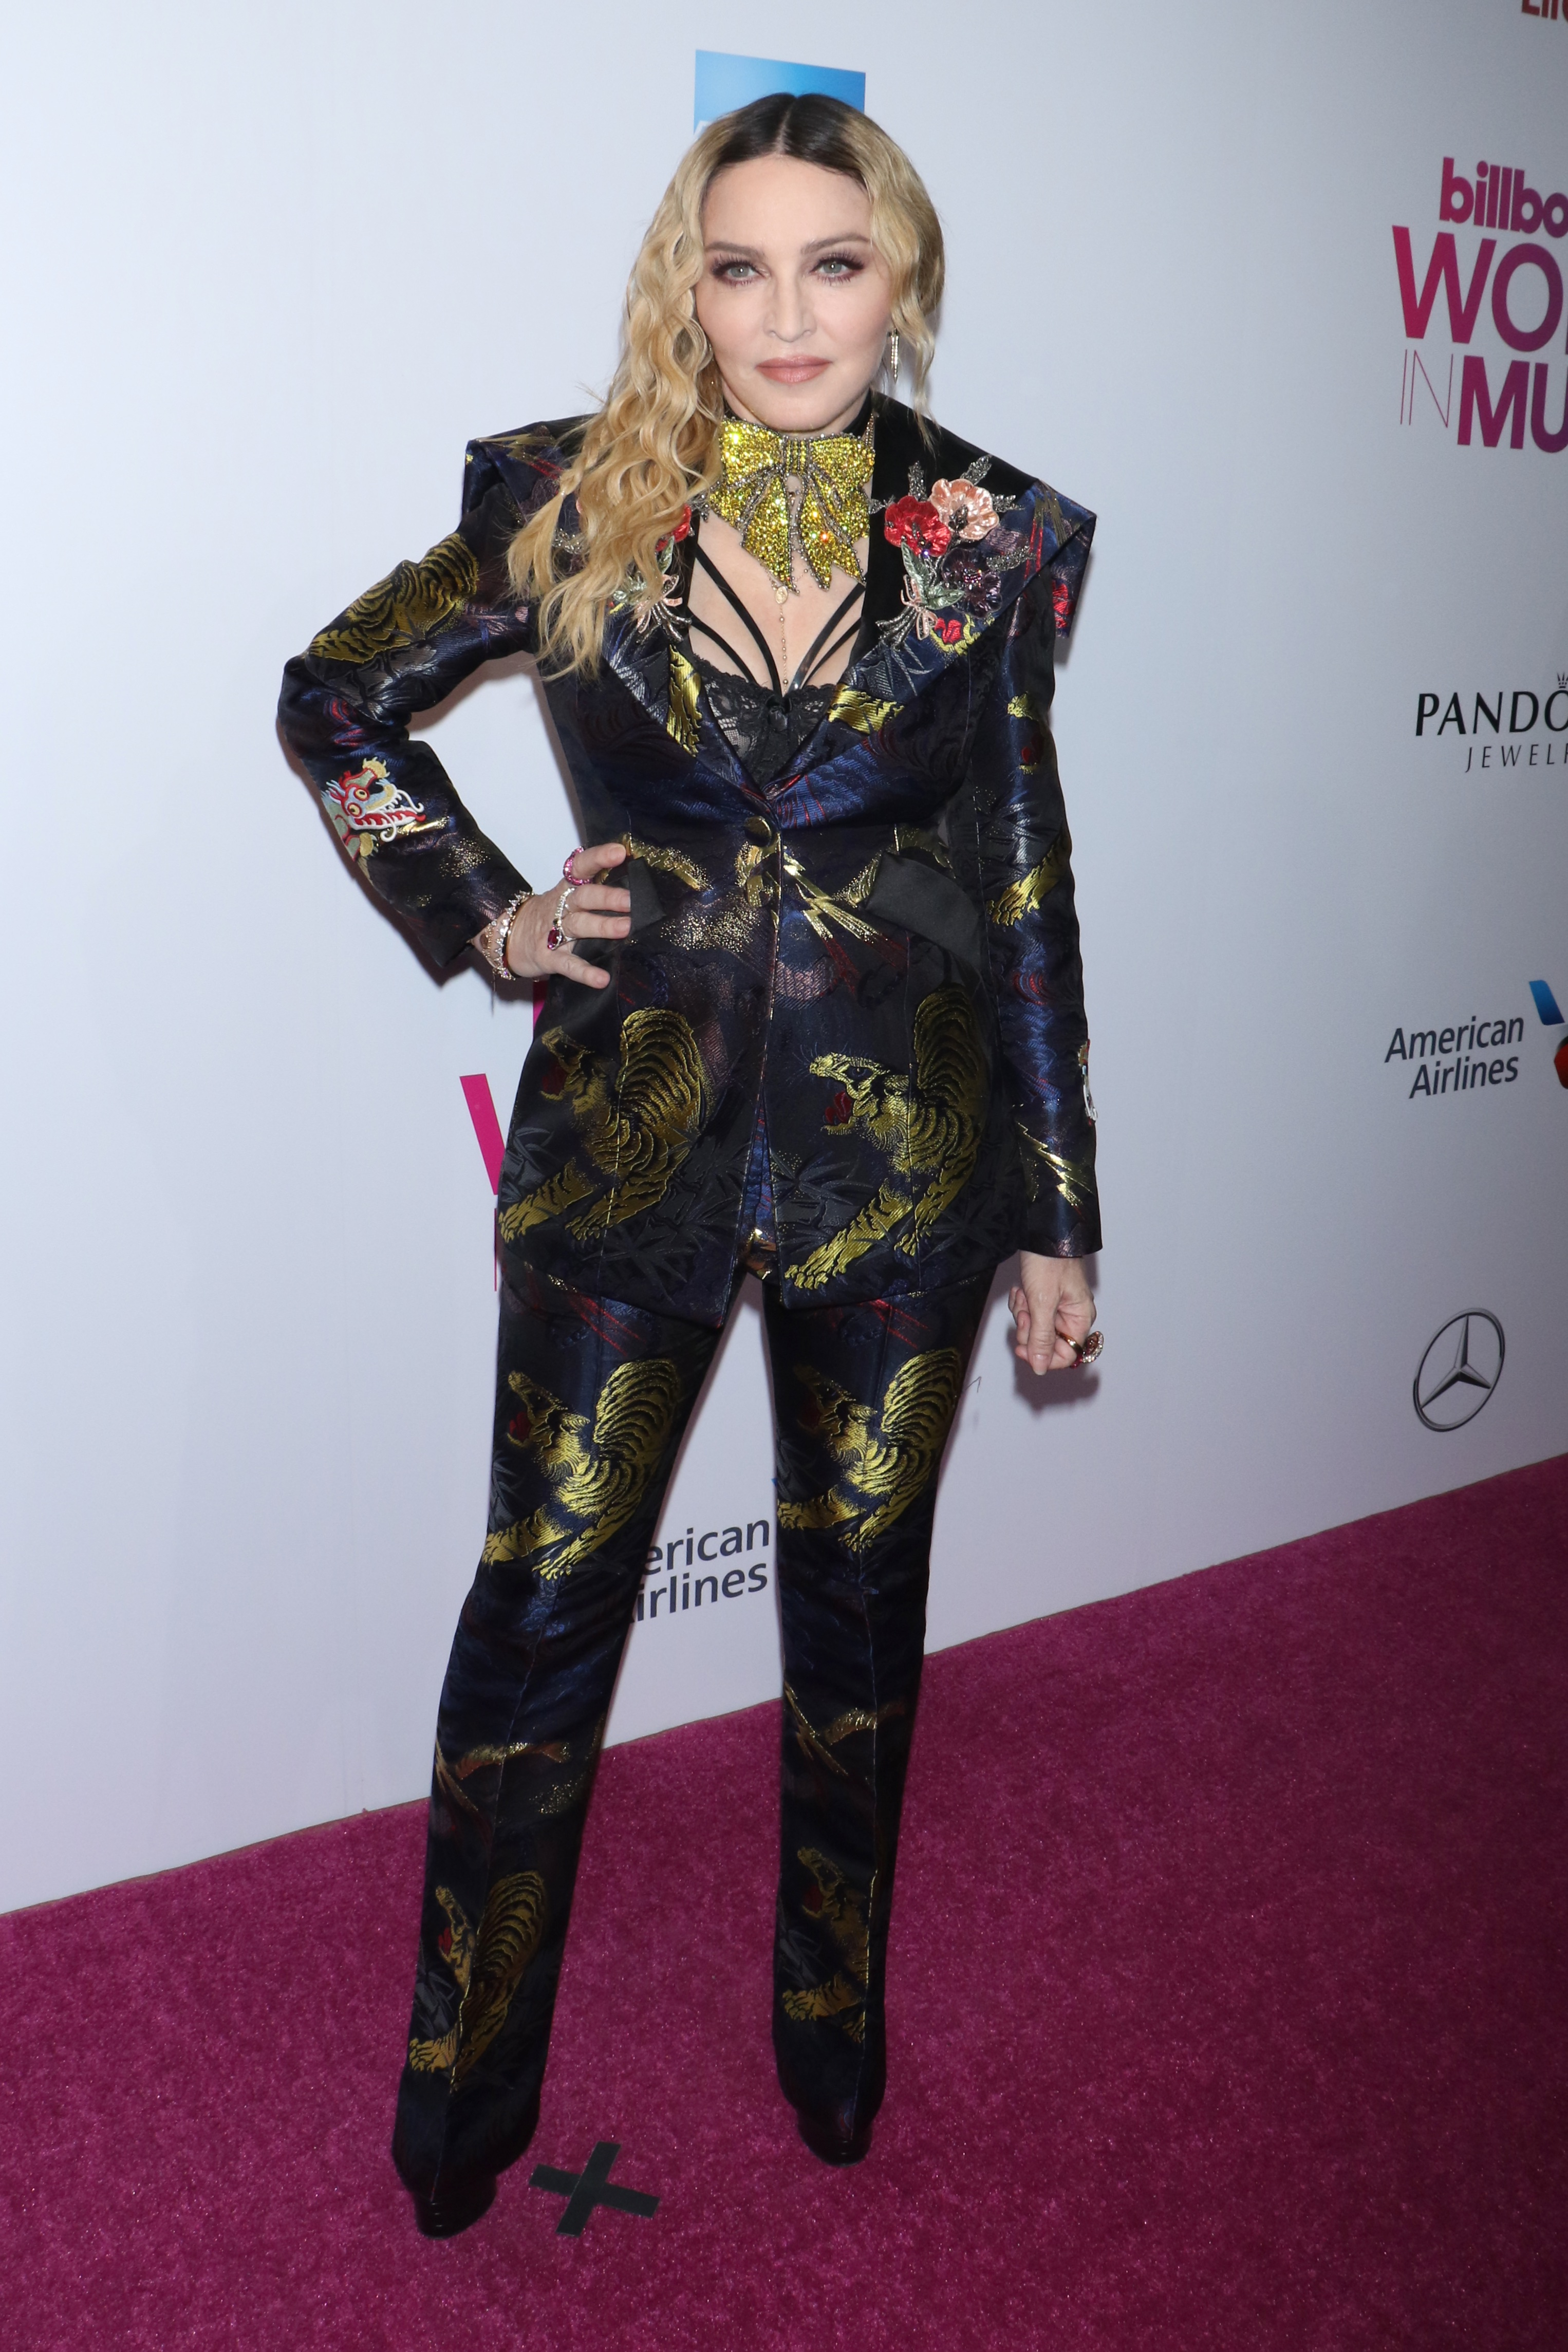 Madonna Opens Up About Her Health 'Injuries' After Canceling Another 'Madame X' Concert